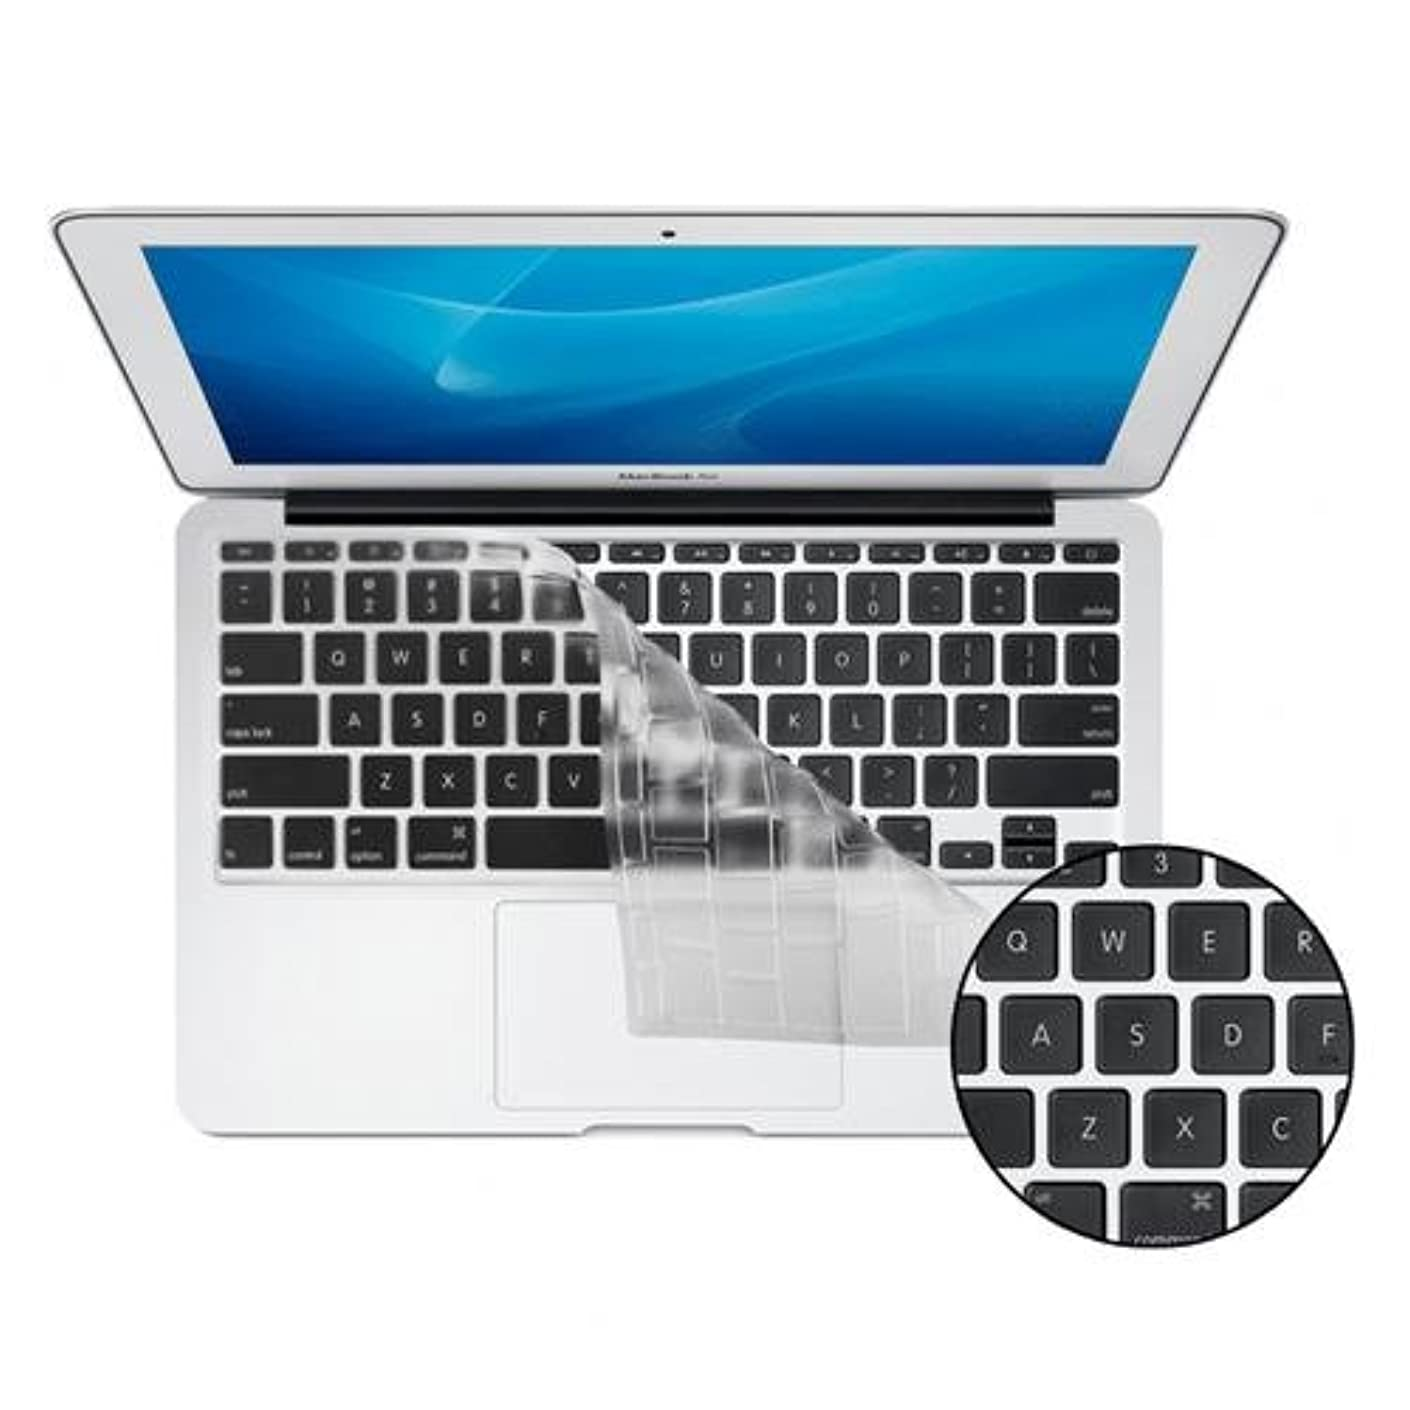 KB Covers ClearSkin 11 Ultra-Clear Keyboard Cover for MacBook Air 11-Inch (ClearSkin-M11-US)